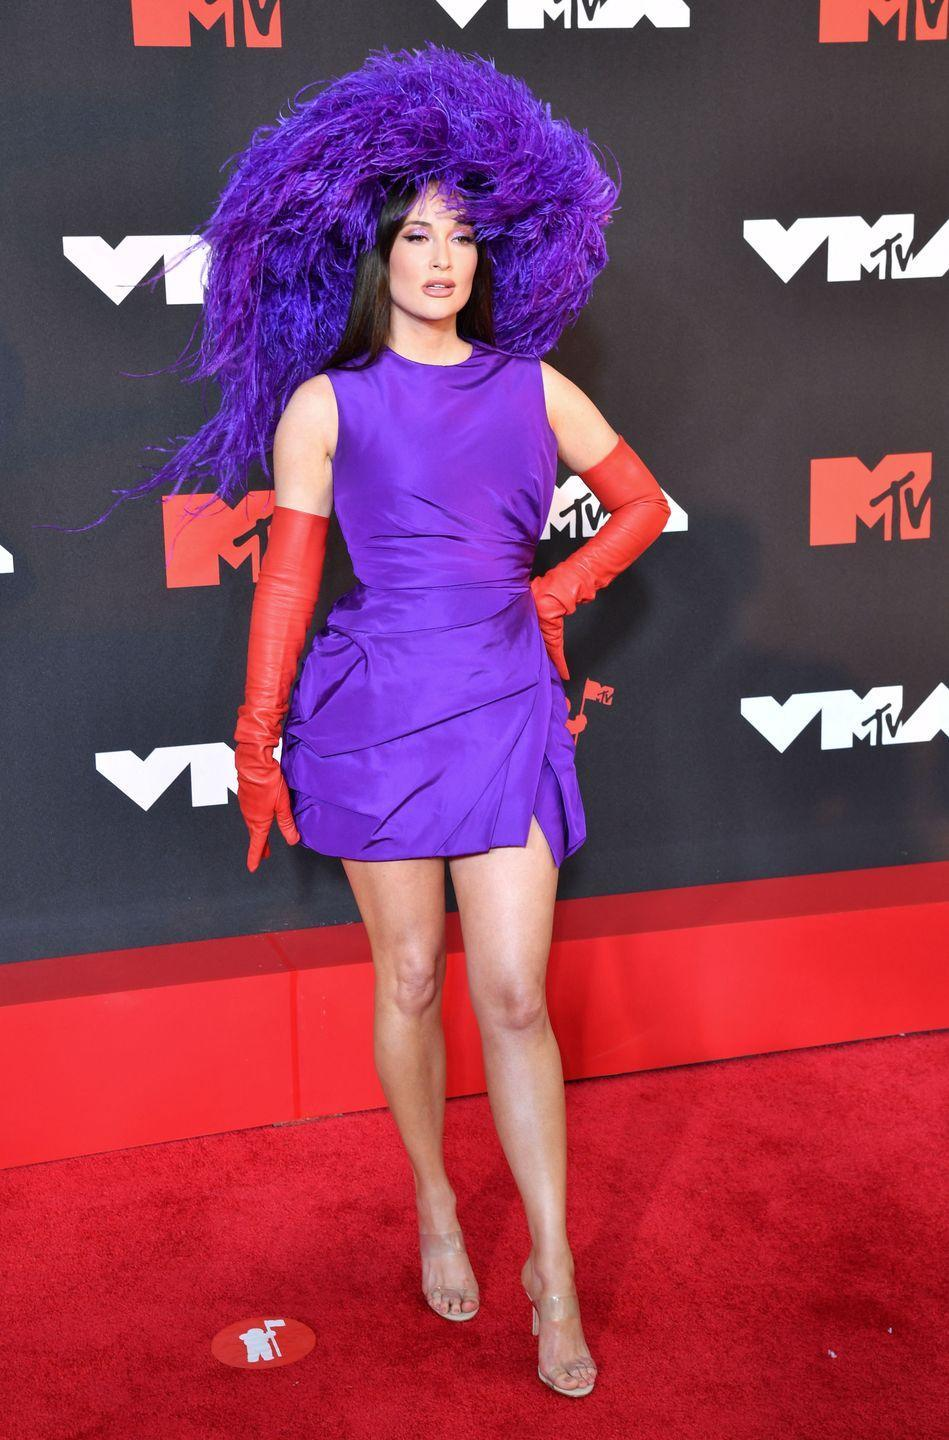 """<p>Kacey Musgraves went all-purple in a ruched mini dress and feathered headdress reminiscent of Lady Gaga's campy New York <a href=""""https://www.harpersbazaar.com/celebrity/latest/a37198084/lady-gaga-statement-purple-poncho-valentino-nyc/"""" rel=""""nofollow noopener"""" target=""""_blank"""" data-ylk=""""slk:street style moment"""" class=""""link rapid-noclick-resp"""">street style moment</a>. </p>"""